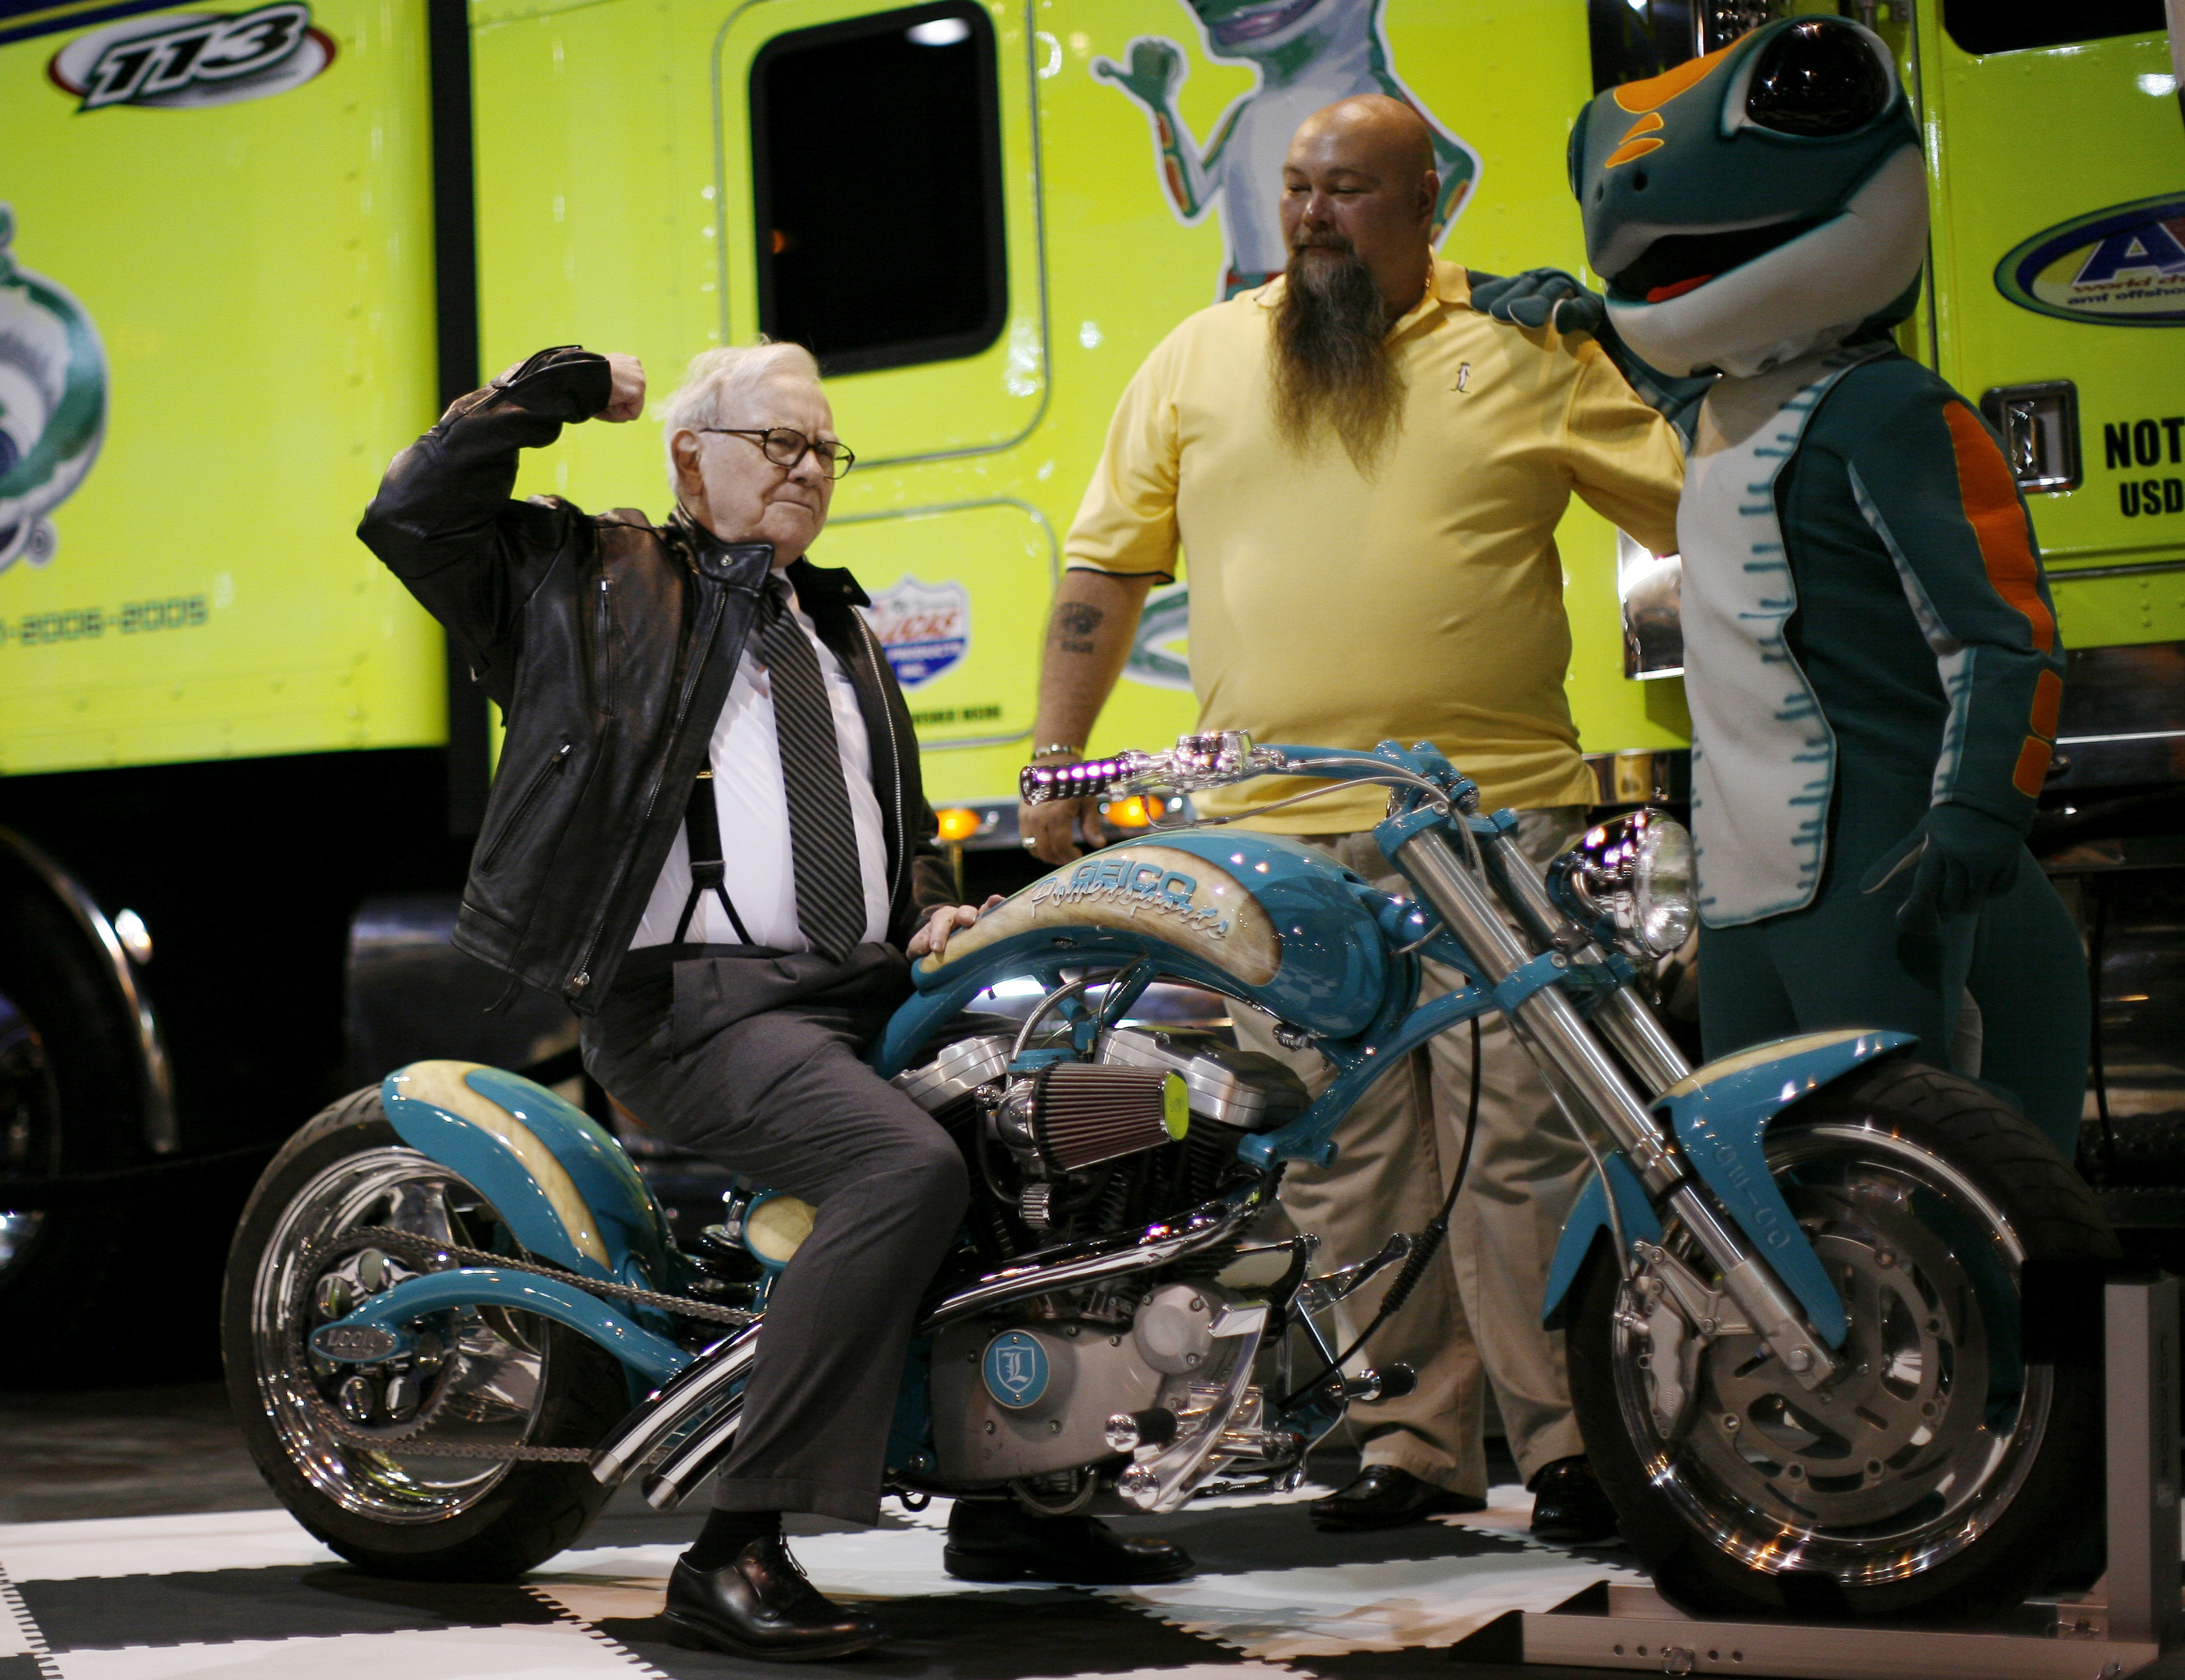 Billionaire financier and Berkshire Hathaway CEO Warren Buffett poses on a motorcycle during Berkshire Hathaway Annual Shareholders meeting in Omaha